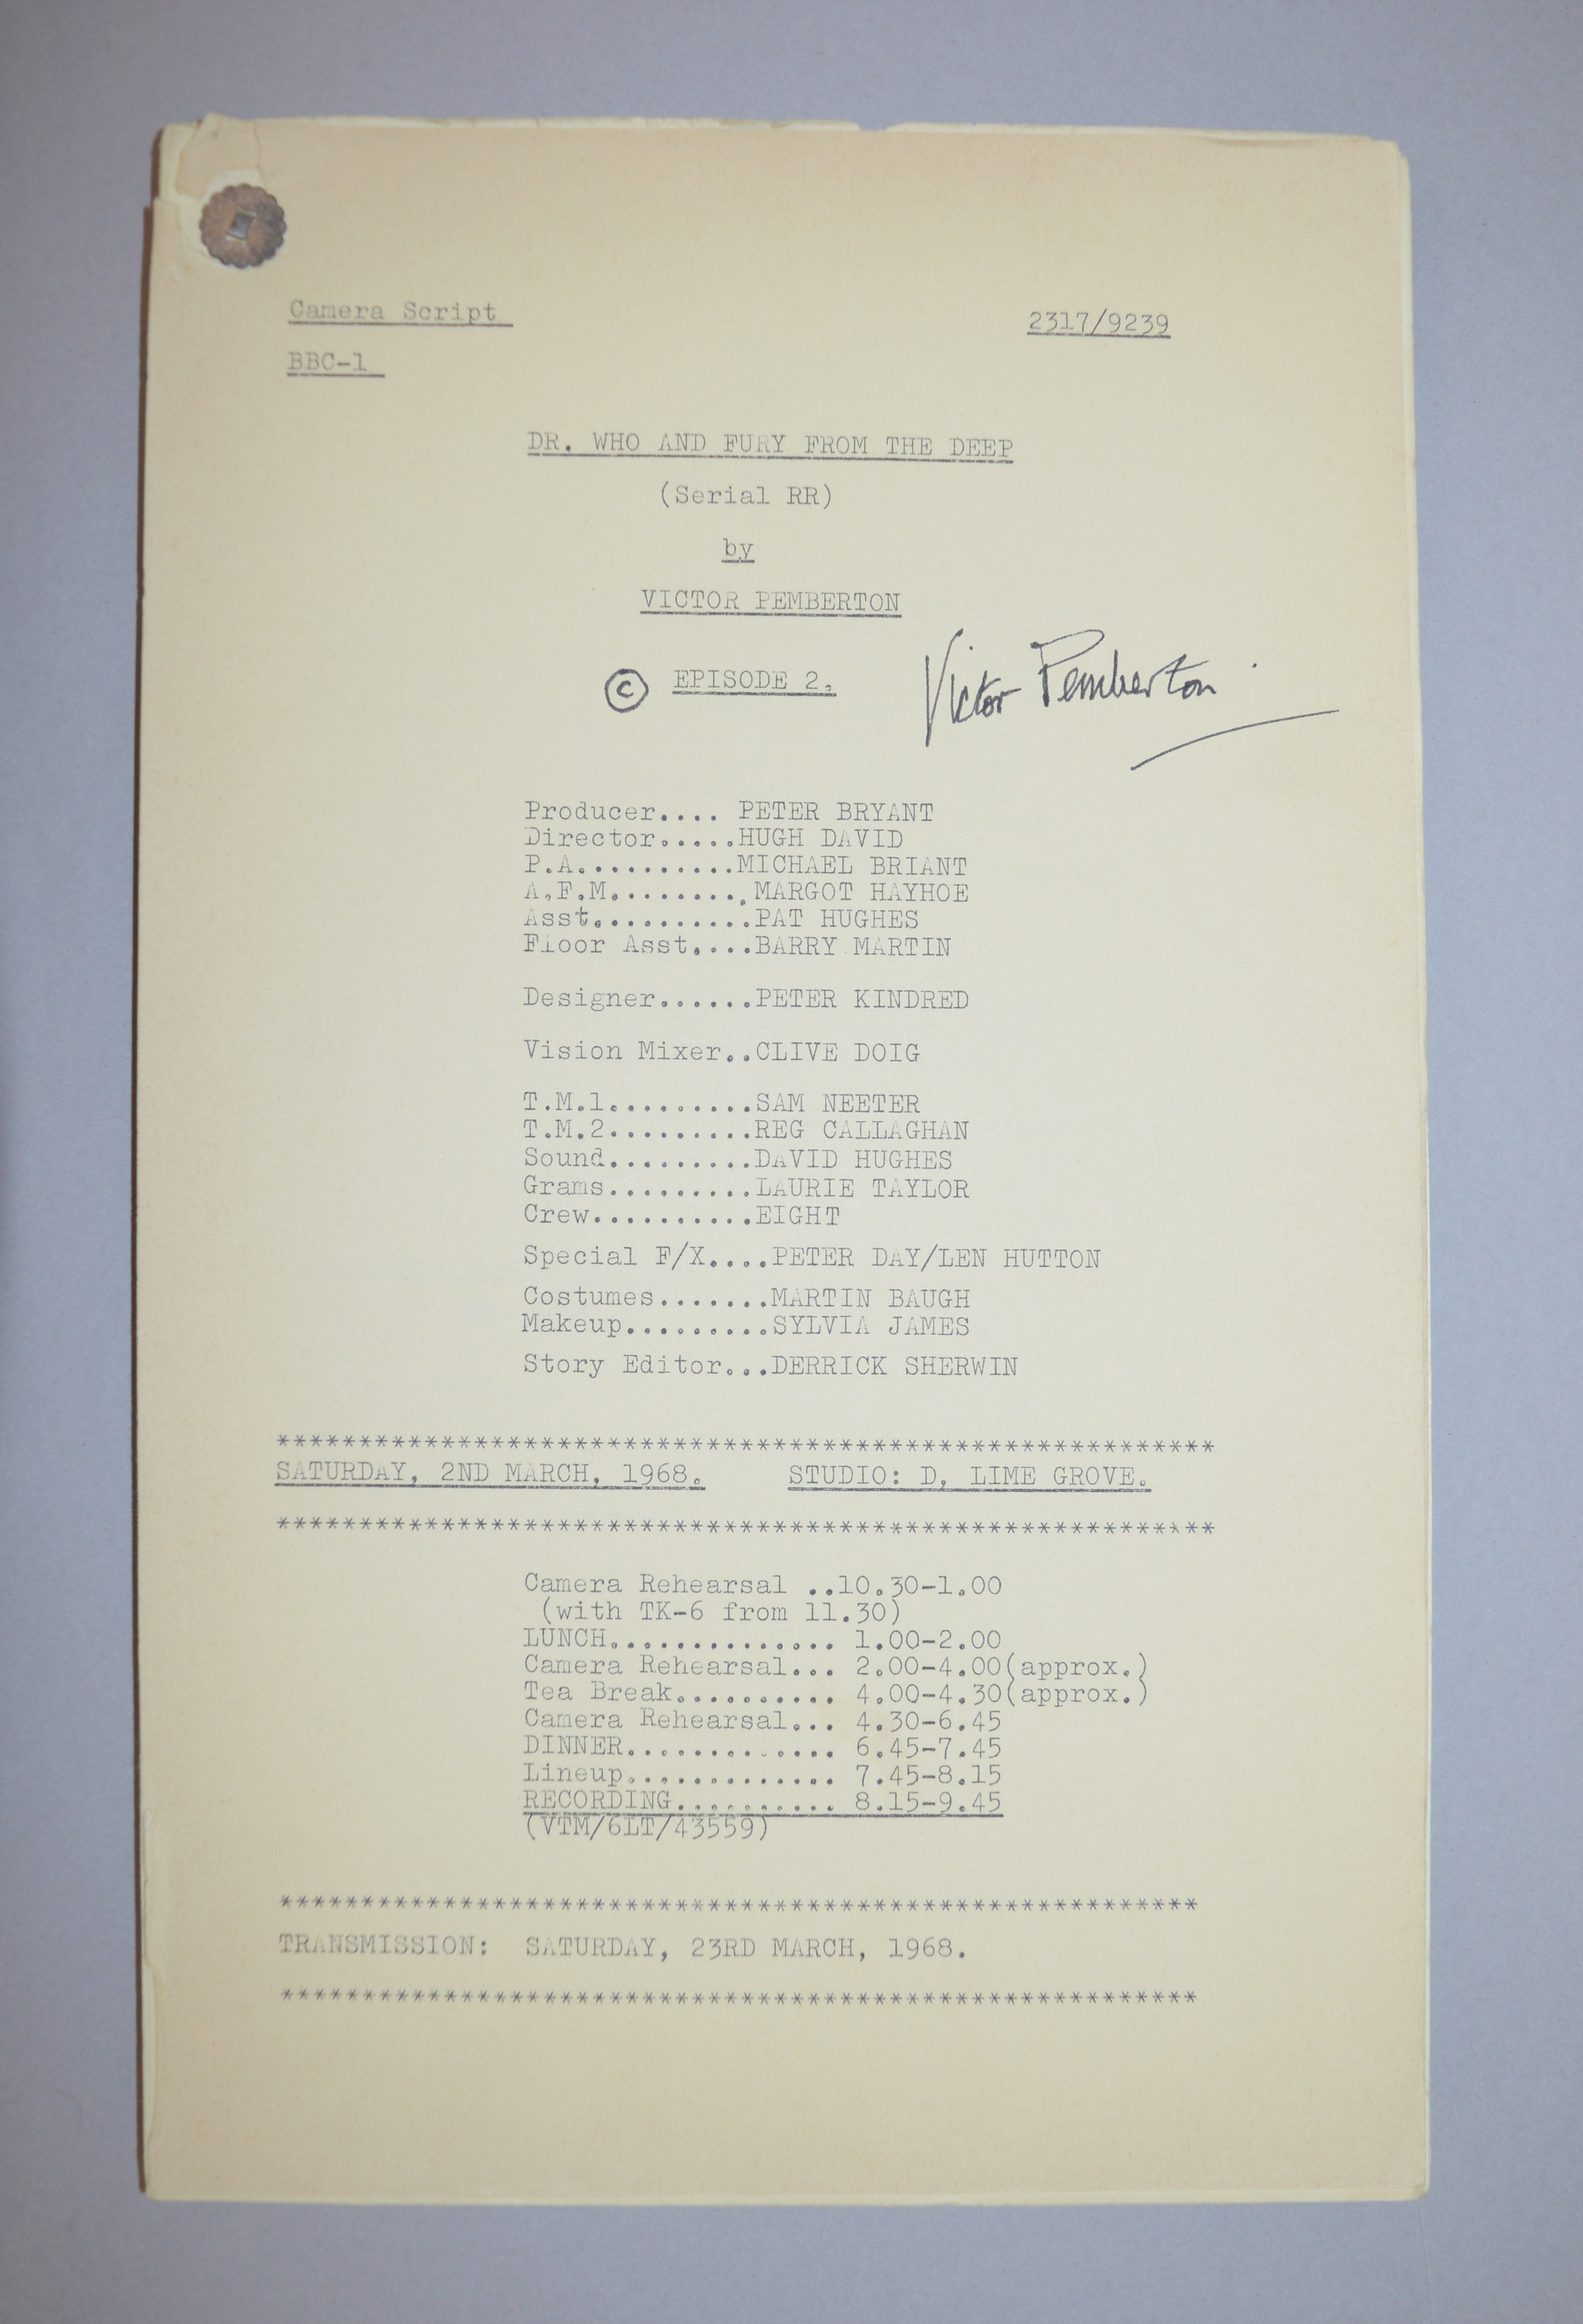 Doctor Who (Dr Who) full set of 6 original camera scripts from the missing 1968 Dr Who episode - - Image 13 of 17